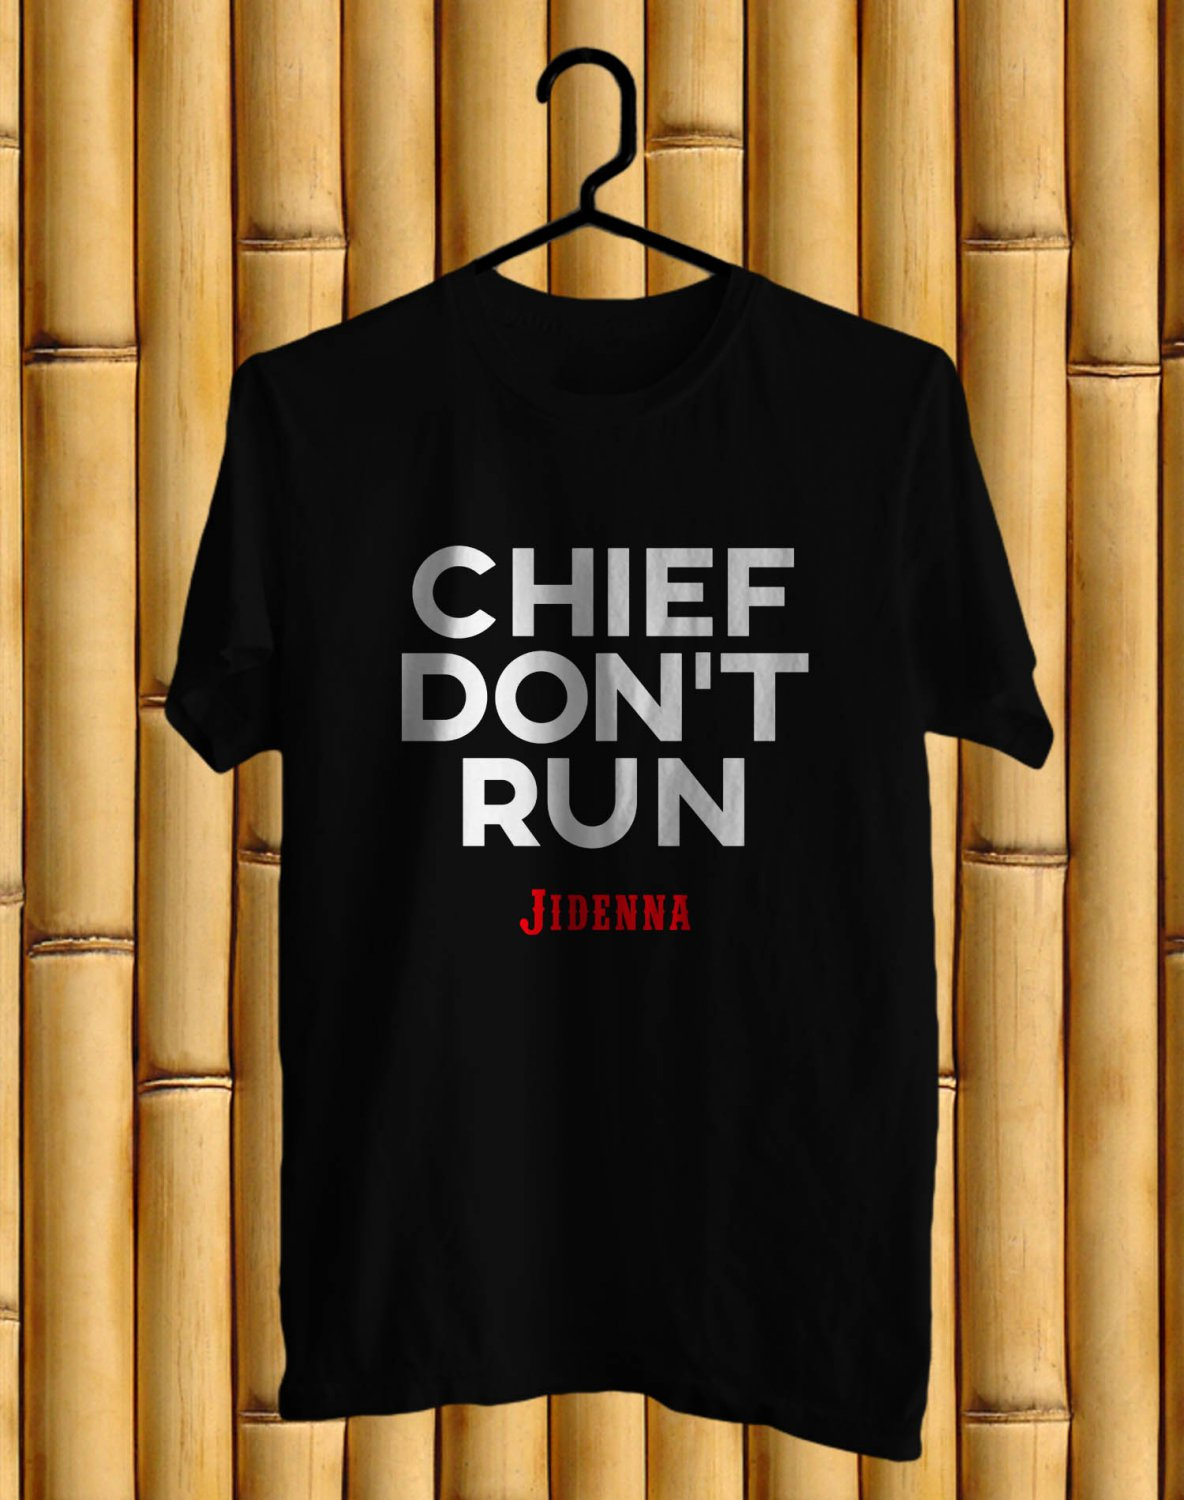 Jidenna Long live The Chief logo Black Tee's Front Side by Complexart z1